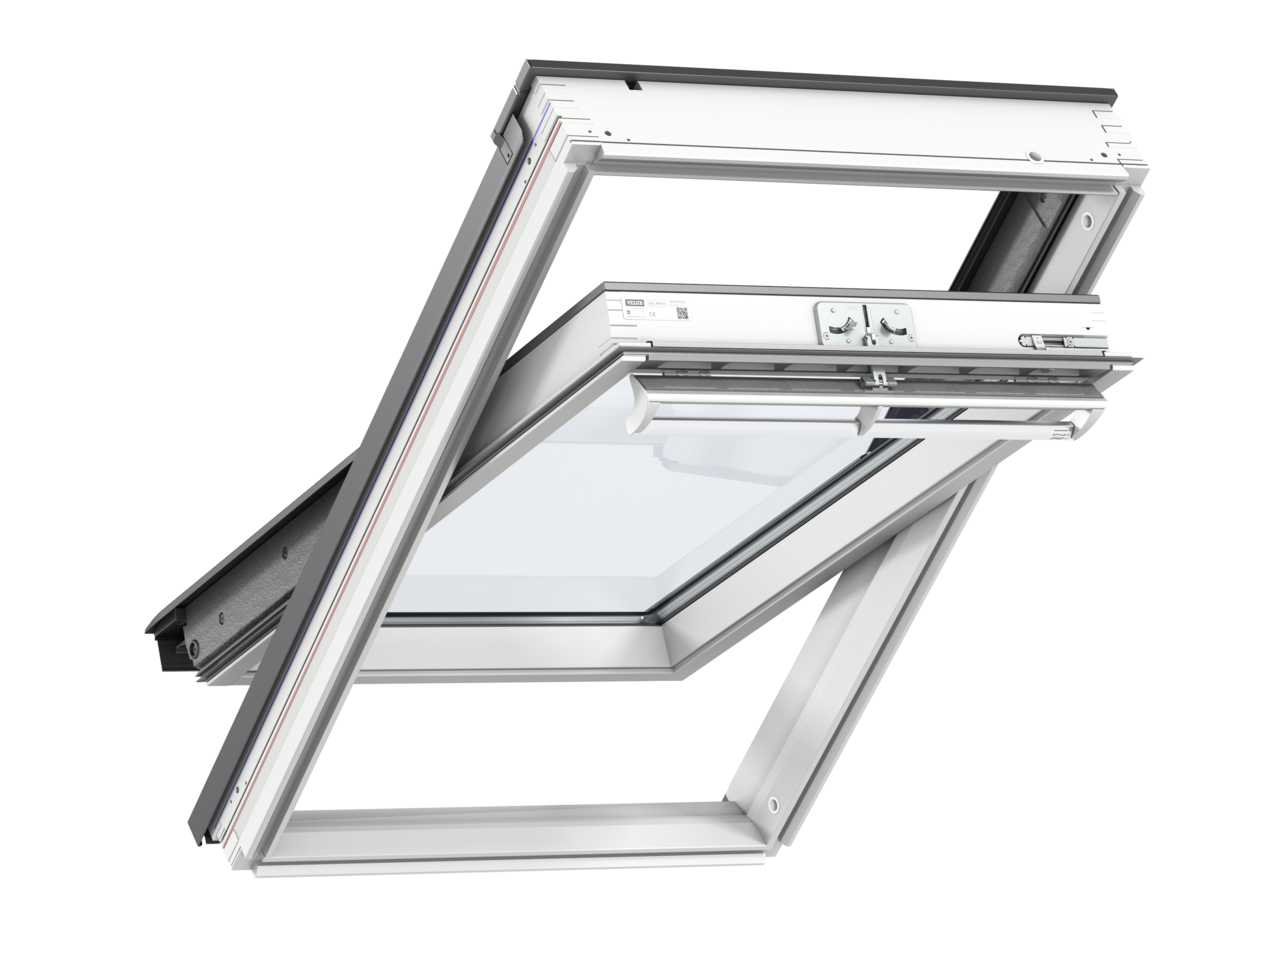 Velux GGL MK06 780 x 1180mm Centre Pivot 62Pane Roof Window - White Painted